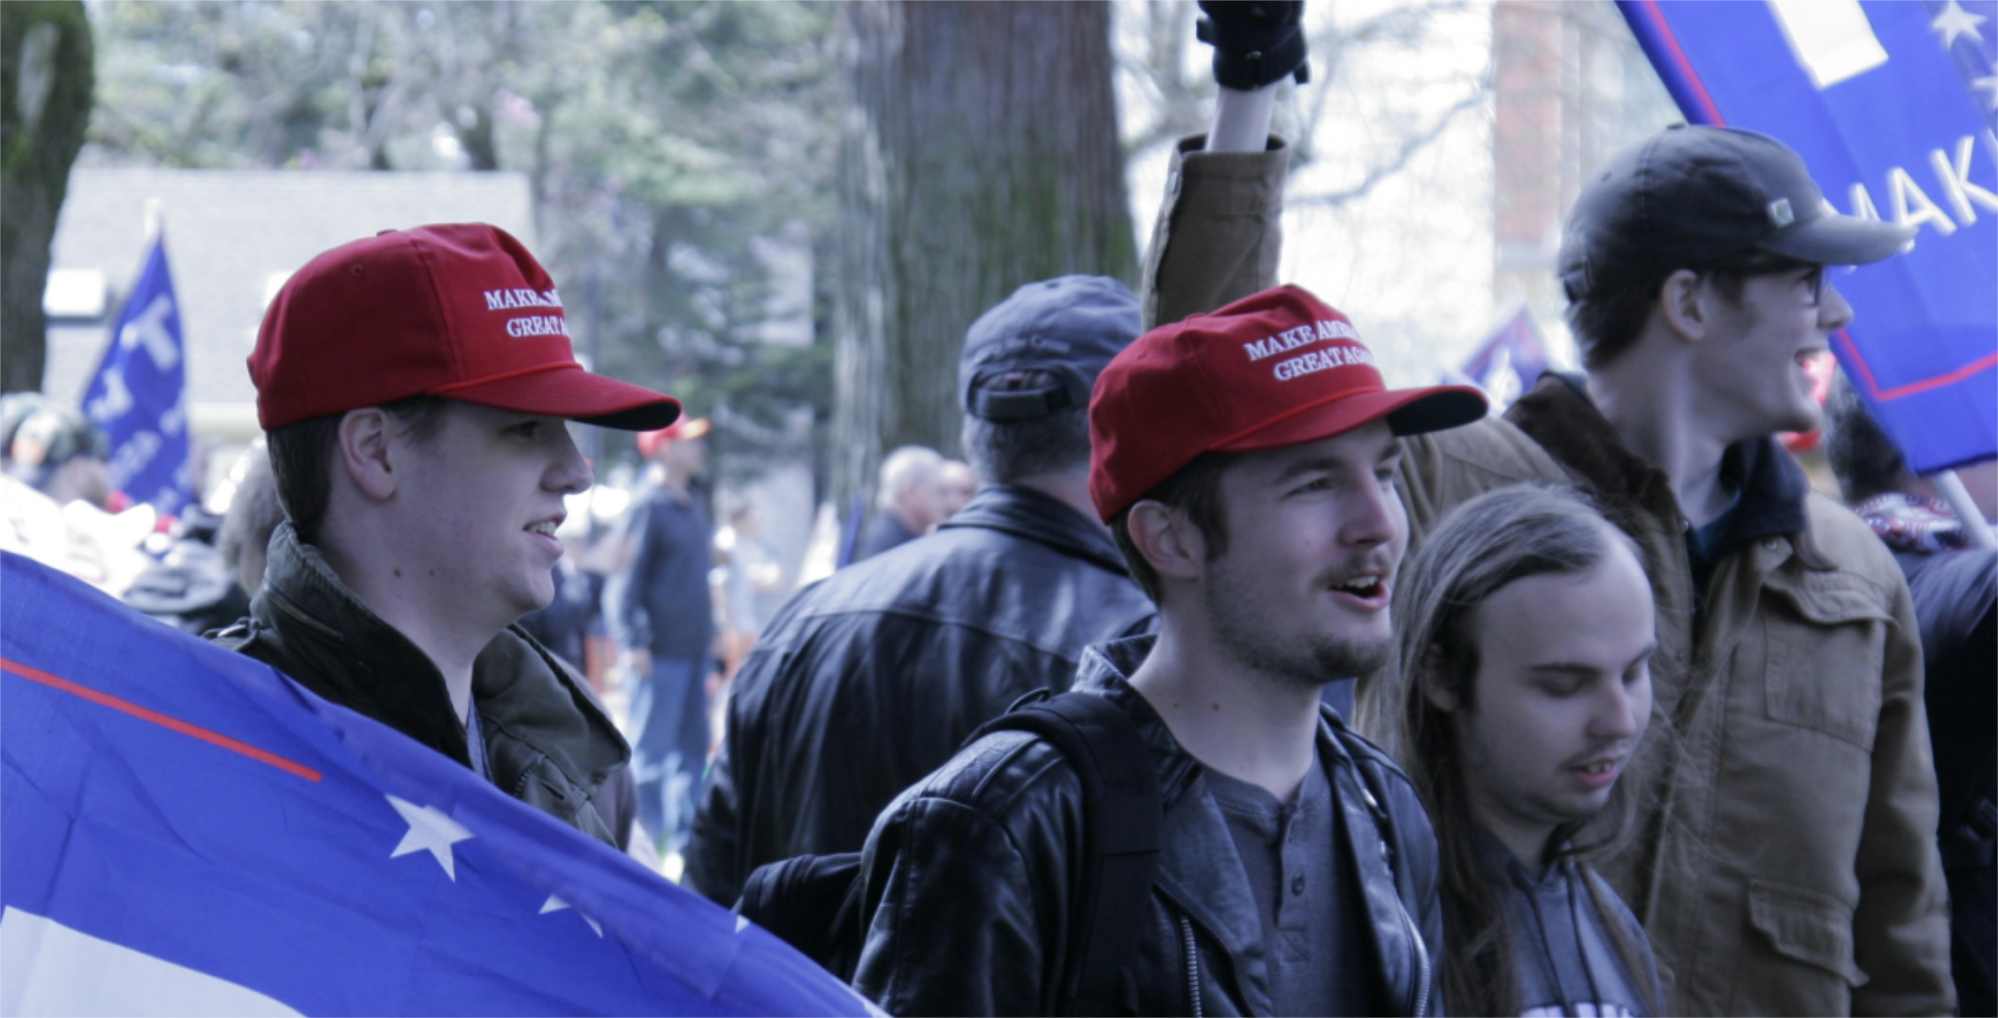 Trump supporters mingled with fascists at rallies in Vancouver and Lake Oswego early in 2017